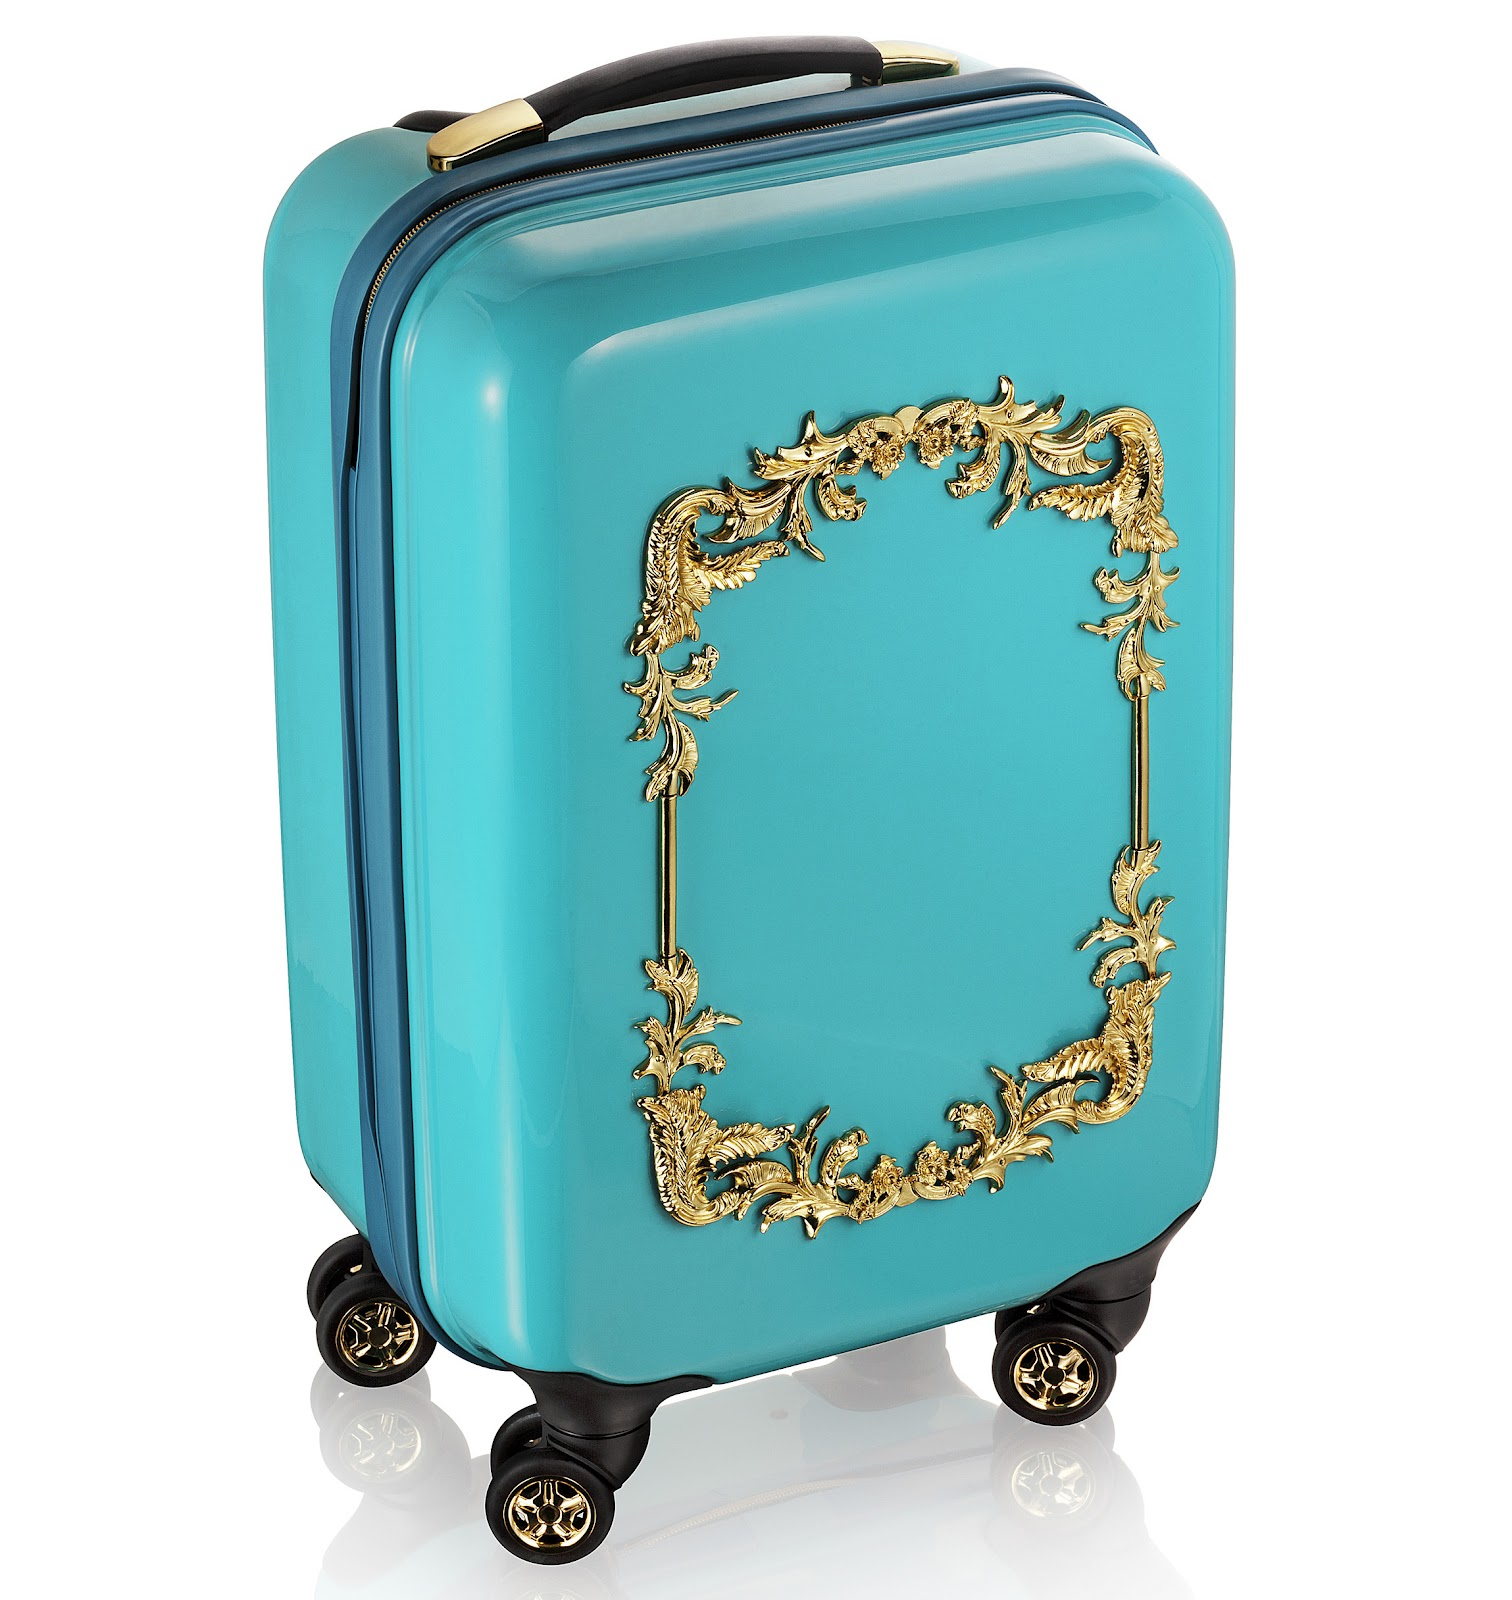 The Turquoise Trolley Suitcase (£99.99) With Gilt Motif Is Gorgeous And  There Is A Matching Beauty Case (£69.99) For You To Prop On Top With A Gold  Crown ...